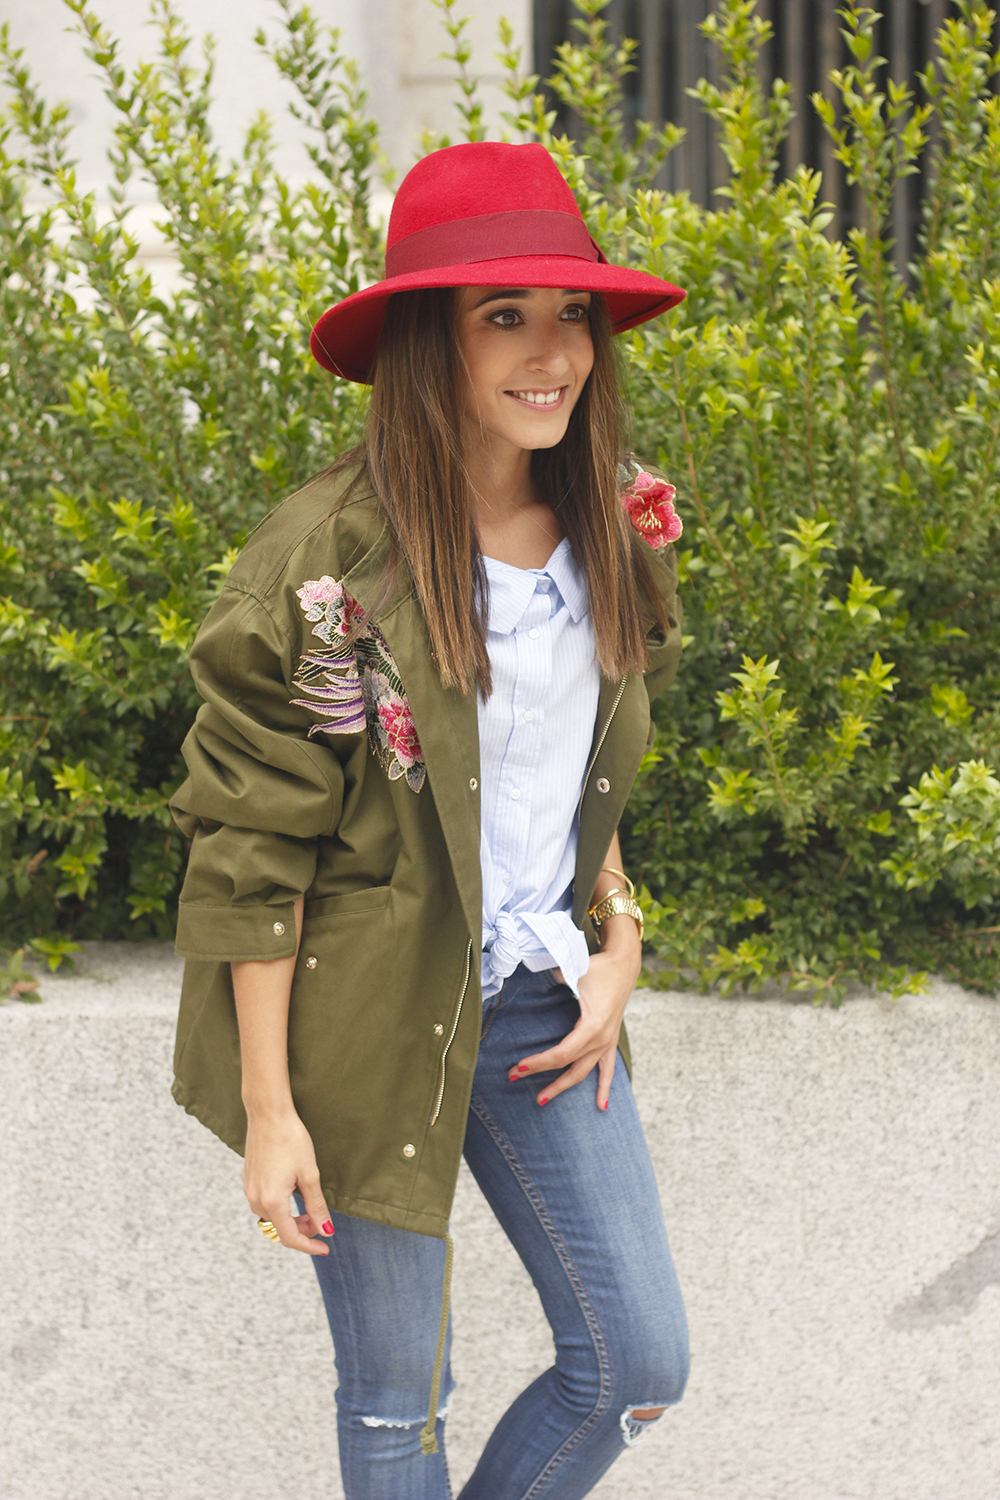 Green Parka Jeans nude heels red uterqüe hat style fashion07